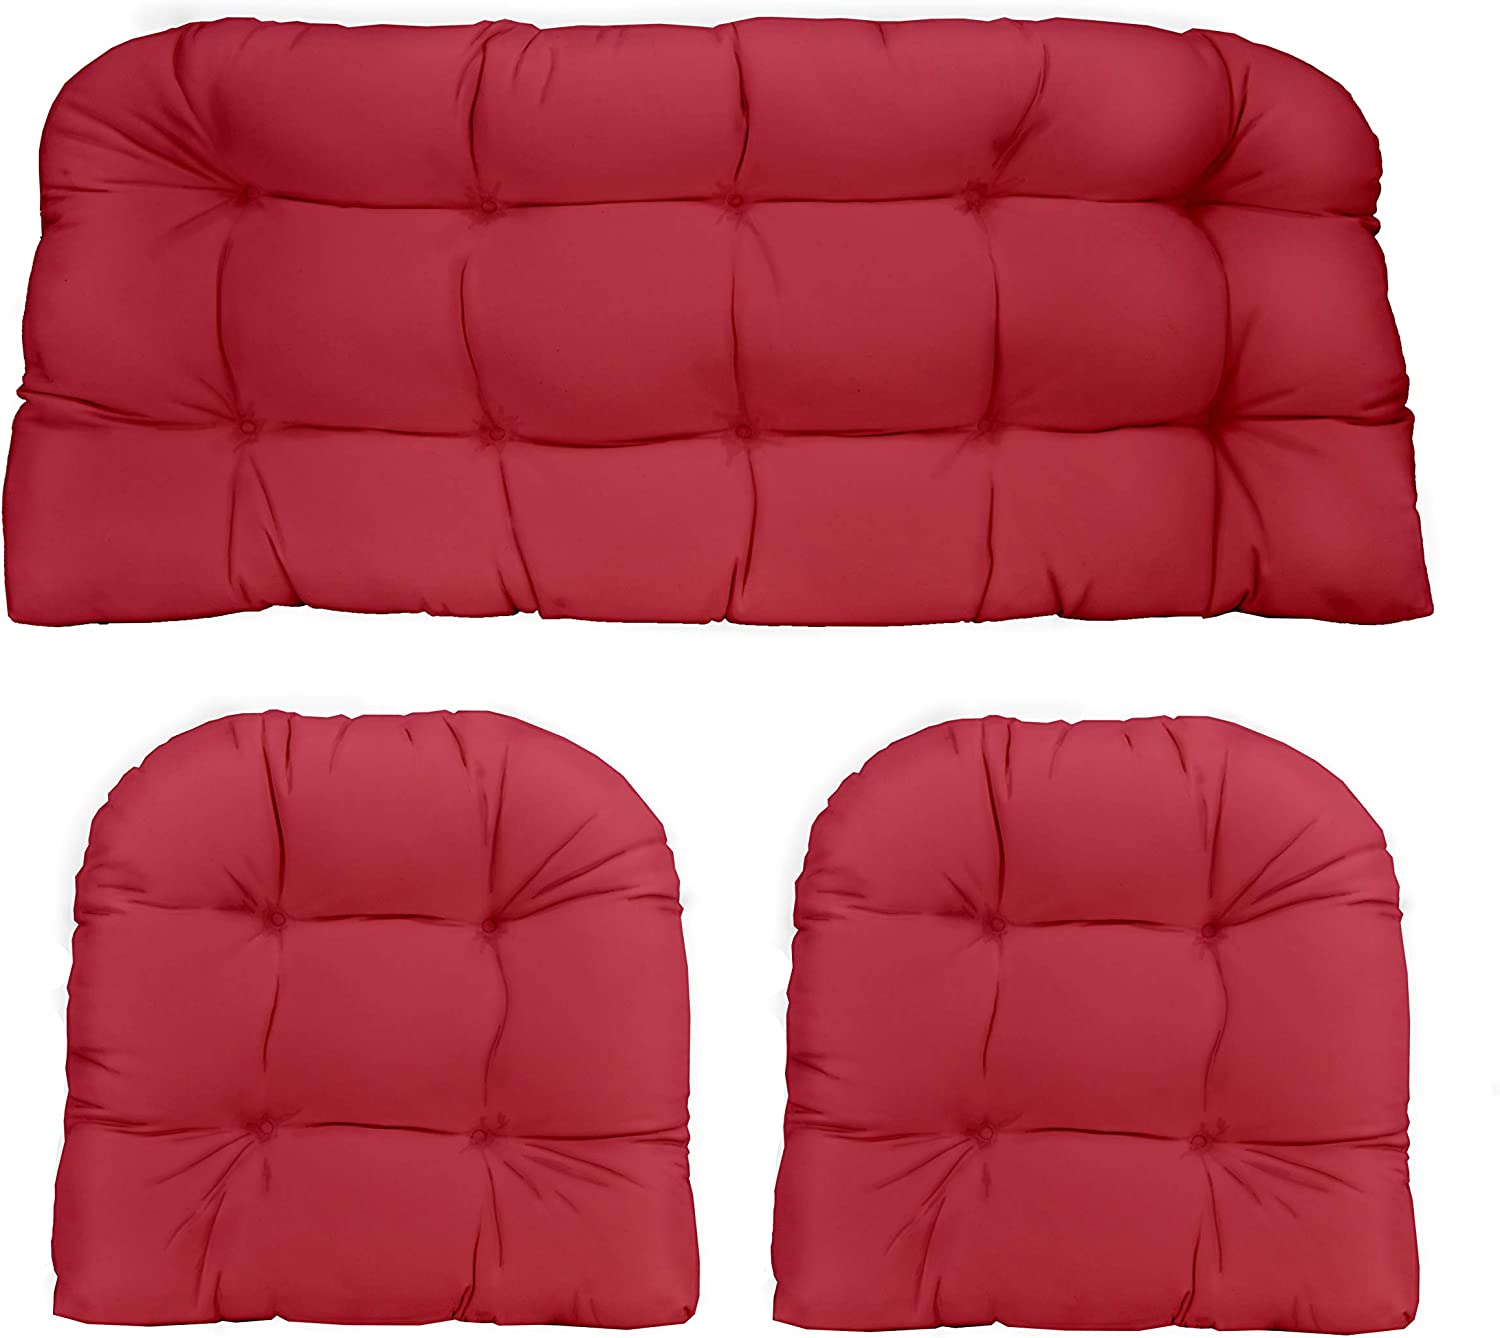 3 Piece Wicker Cushion Set Solid Hot Pink Indoor Outdoor Fabric Cushion For Wicker Loveseat Settee 2 Matching Chair Cushions Kitchen Dining